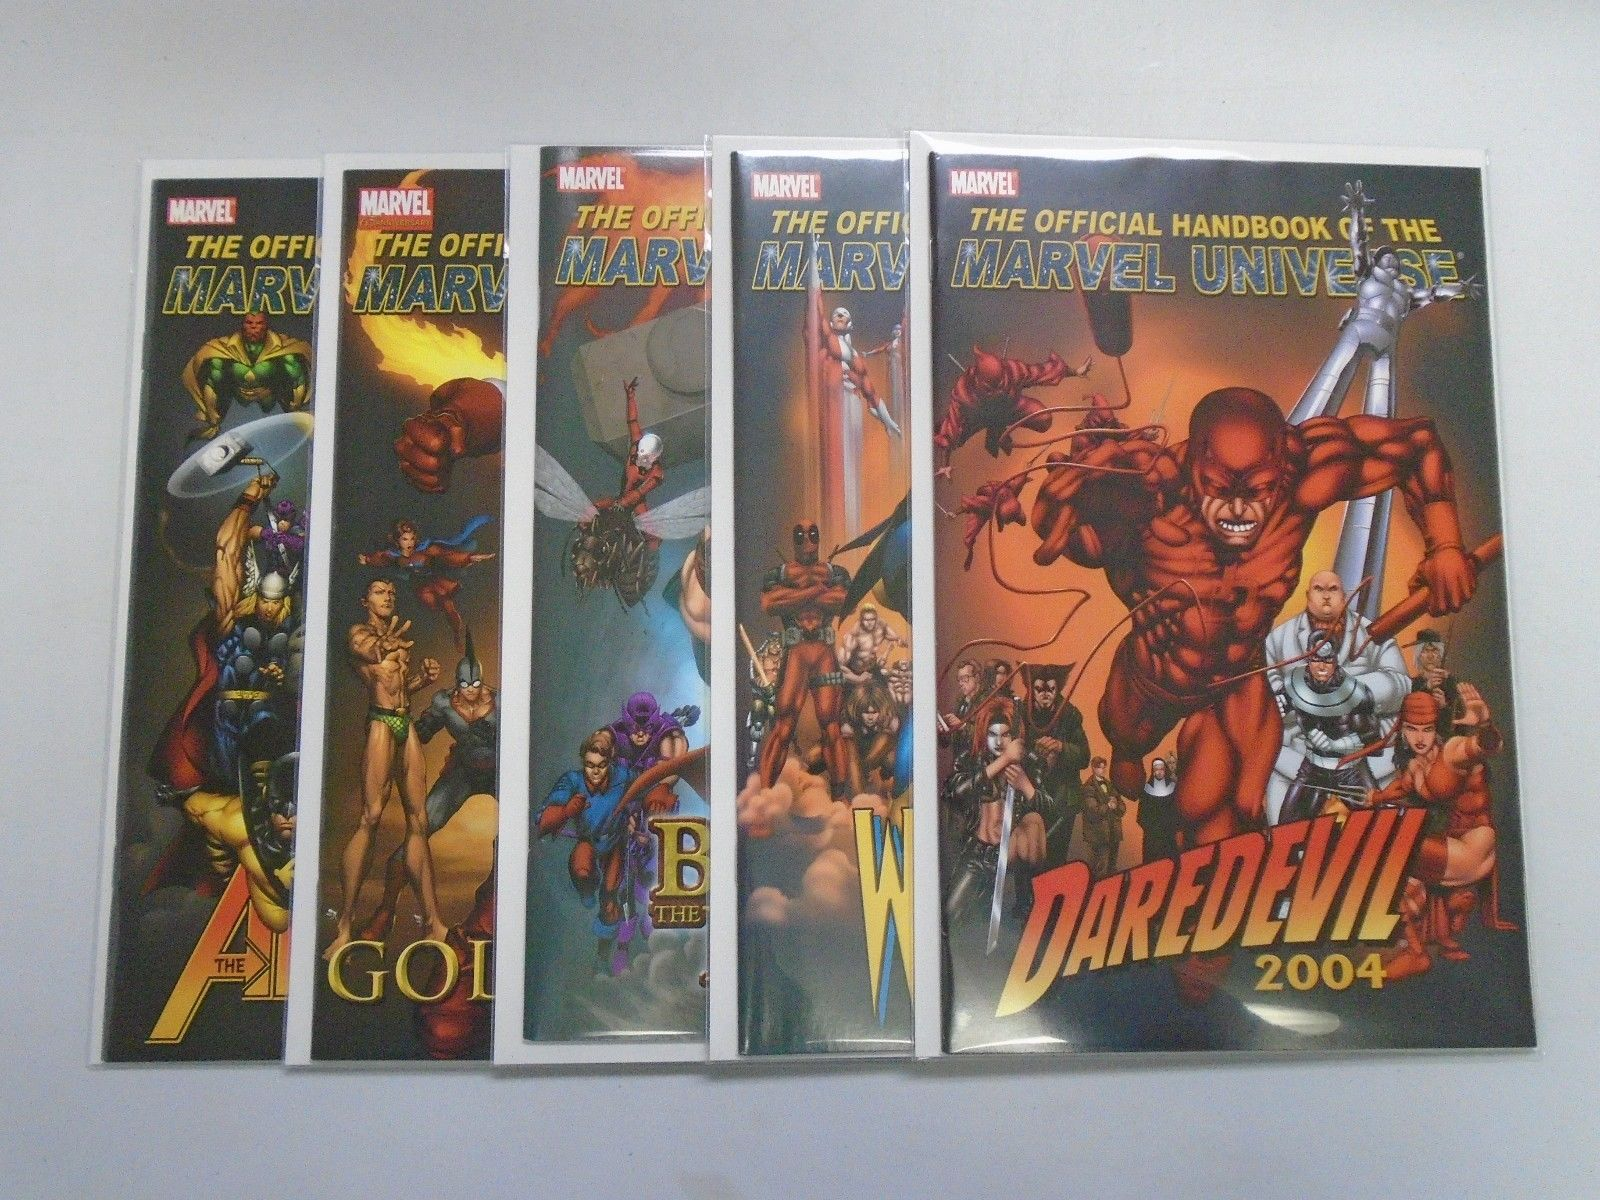 2004 Marvel Comics The Official Handbook Of The Marvel Universe Daredevil